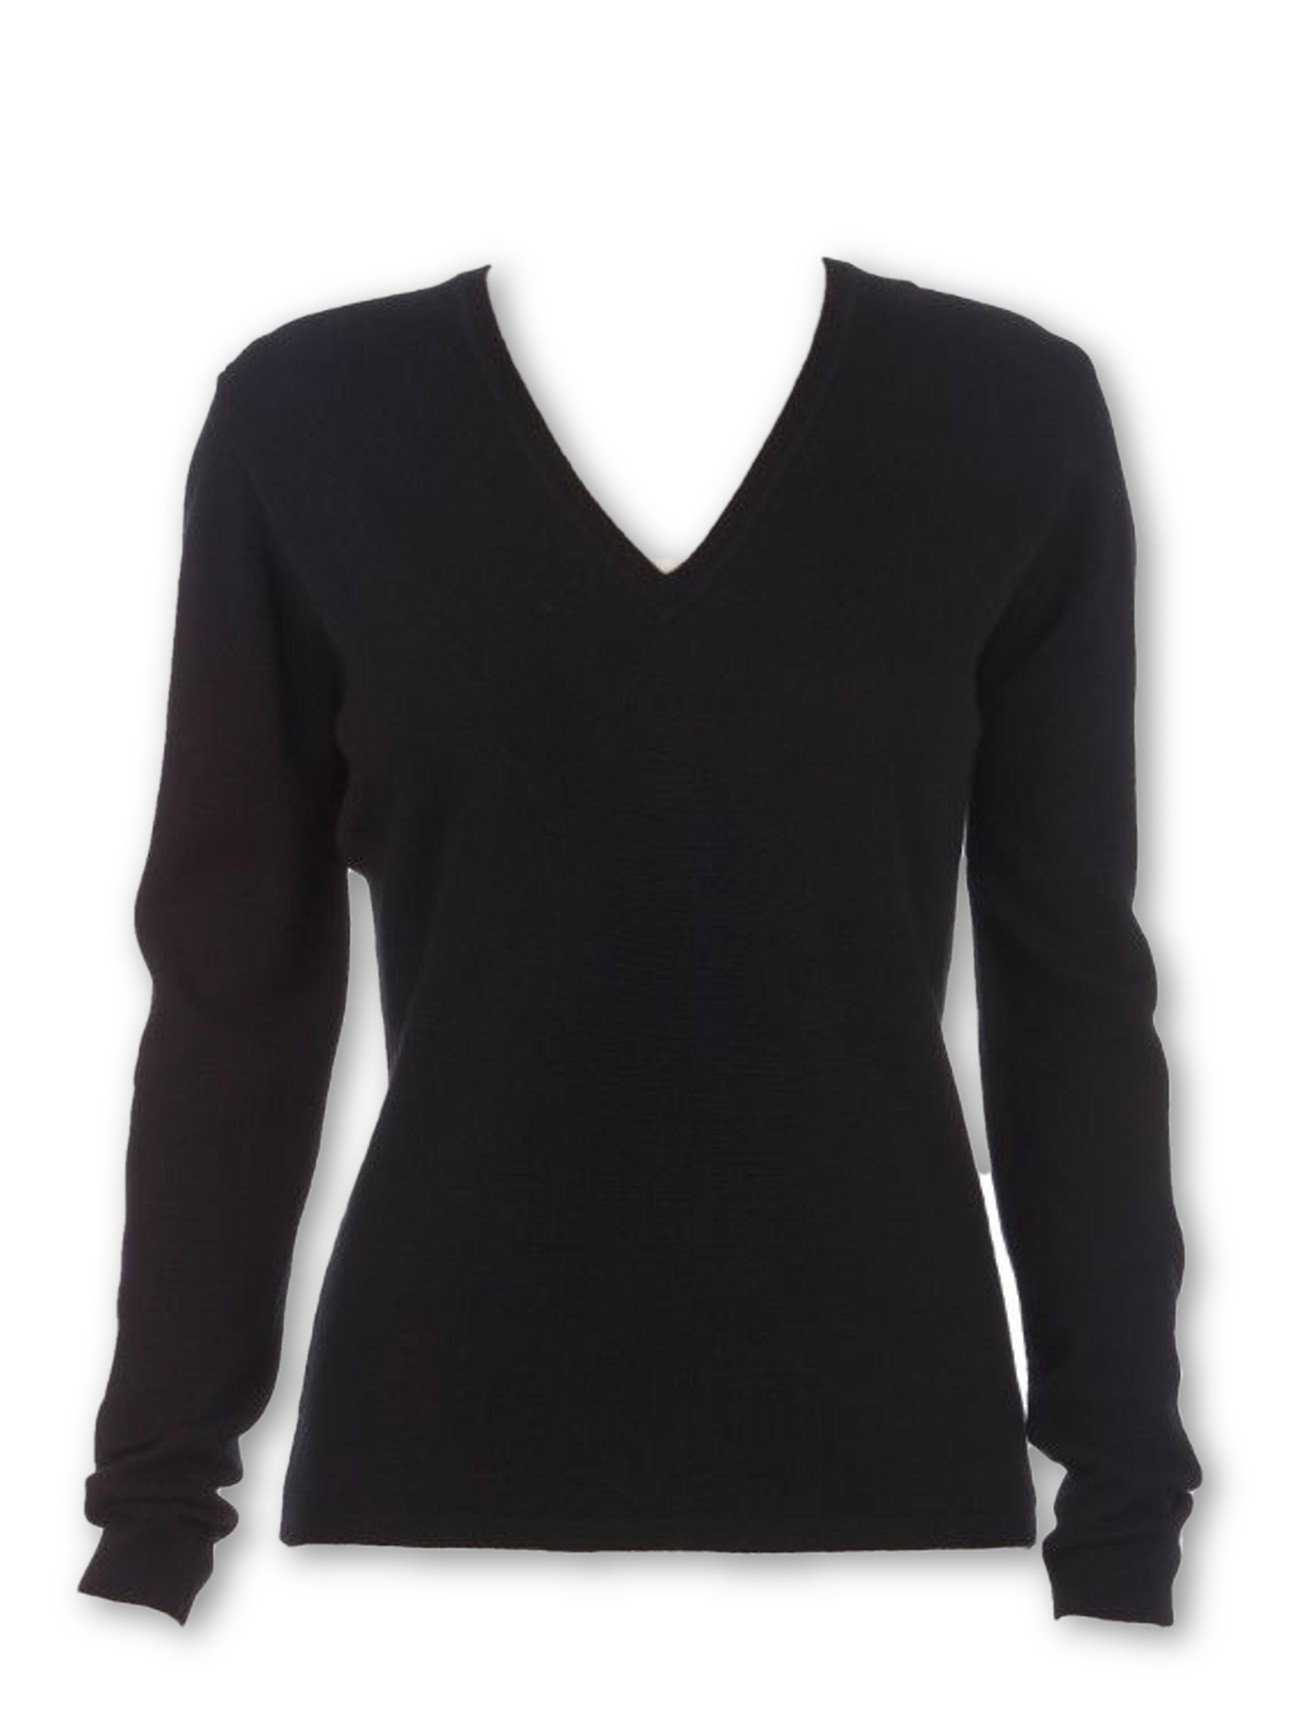 Black Ladies' V-Neck Sweater - 100% Cashmere Made in Scotland